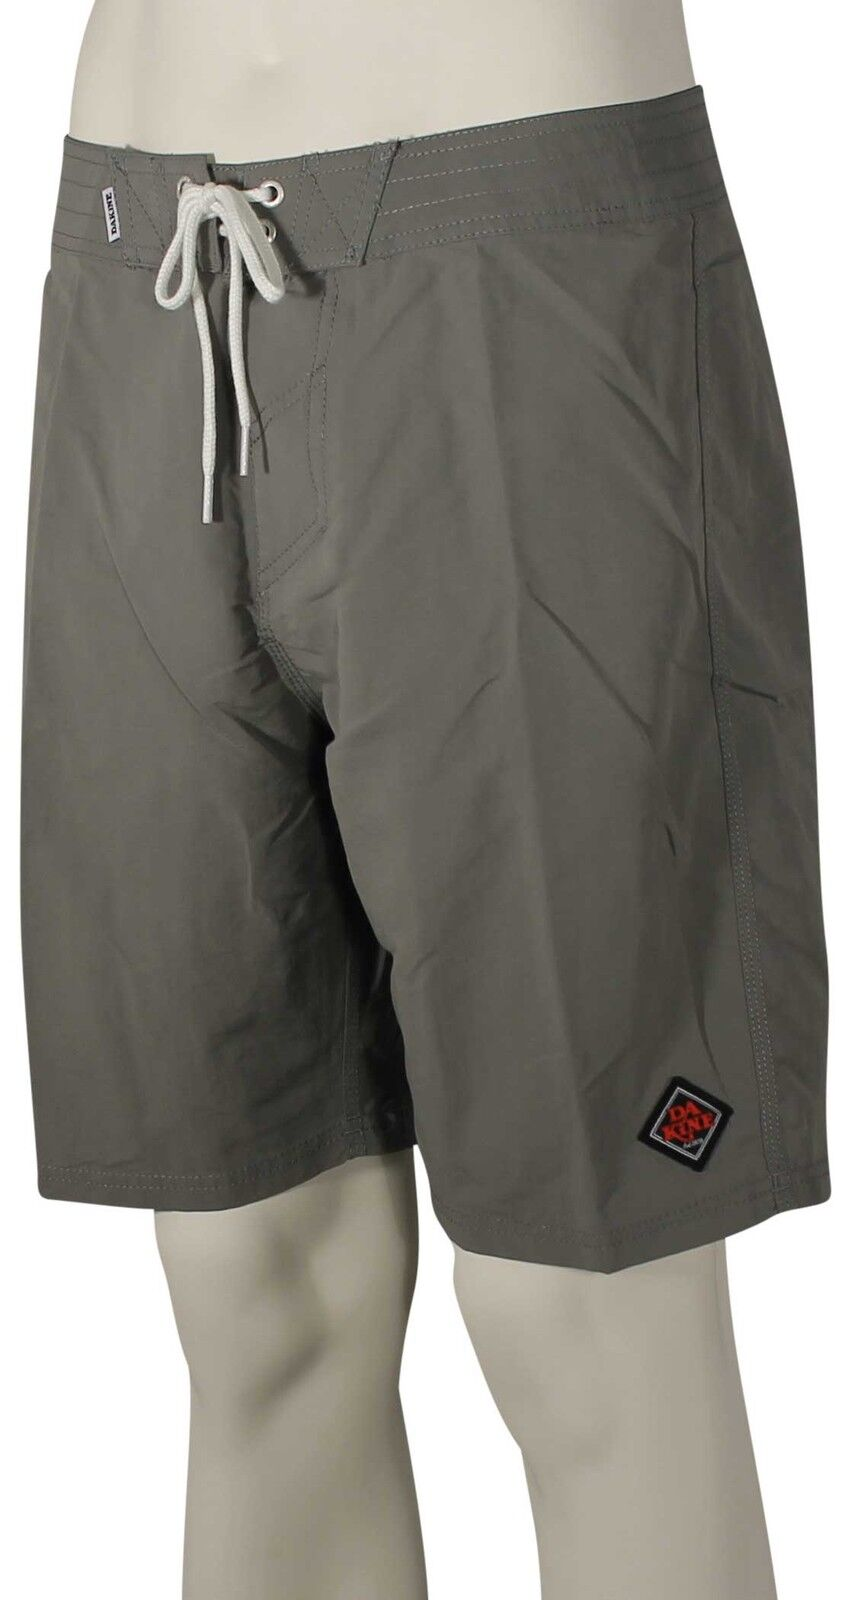 Dakine Beach Boy Boardshorts - Gunmetal - New